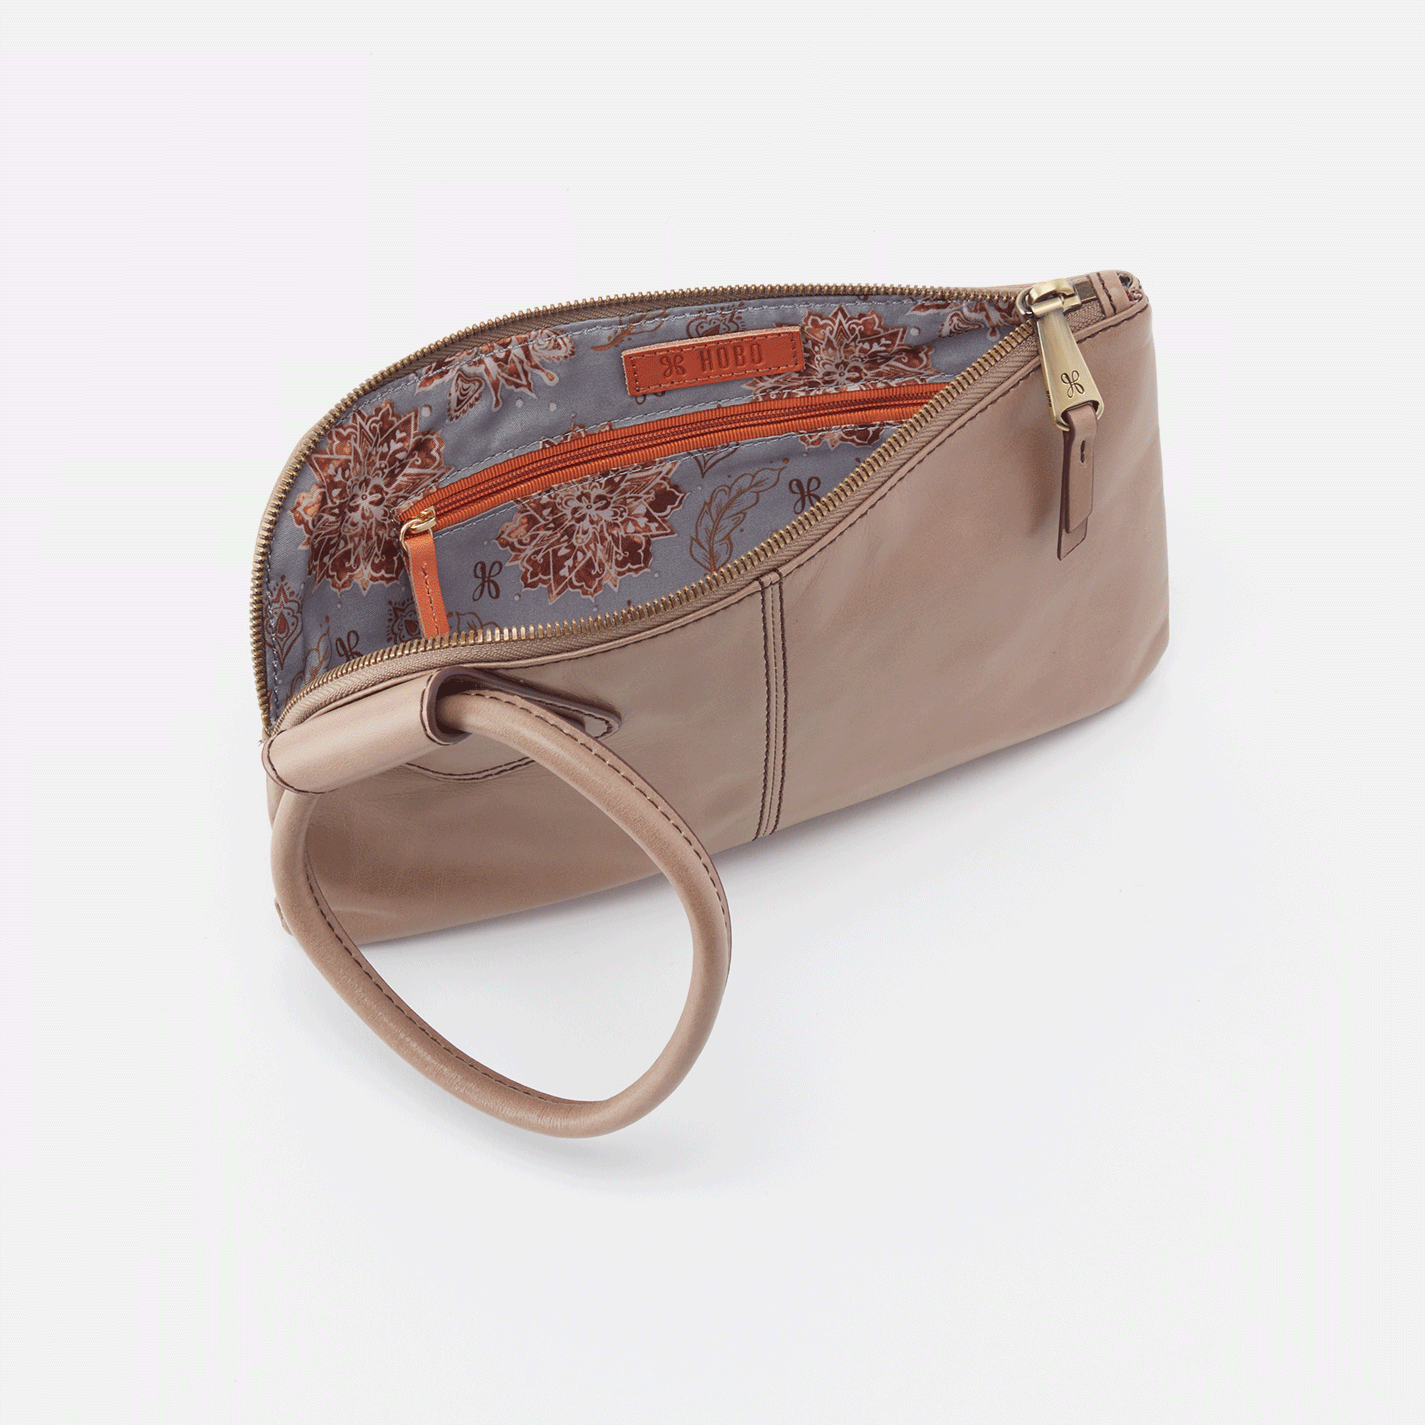 Sable Wristlet Clutch - Cobblestone